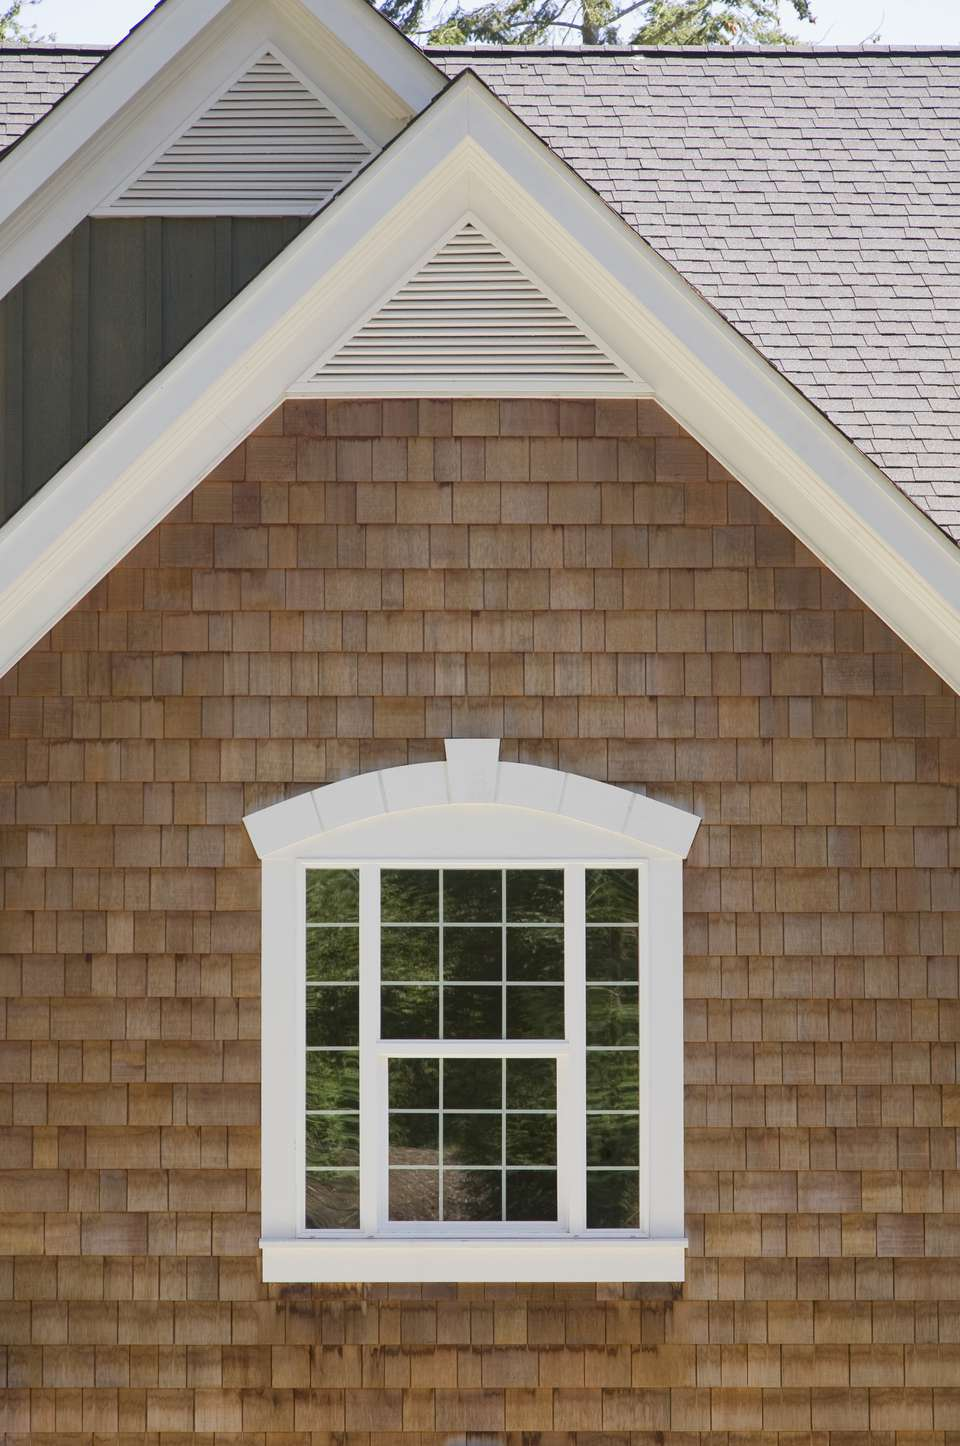 House siding options from plywood to vinyl for House siding choices